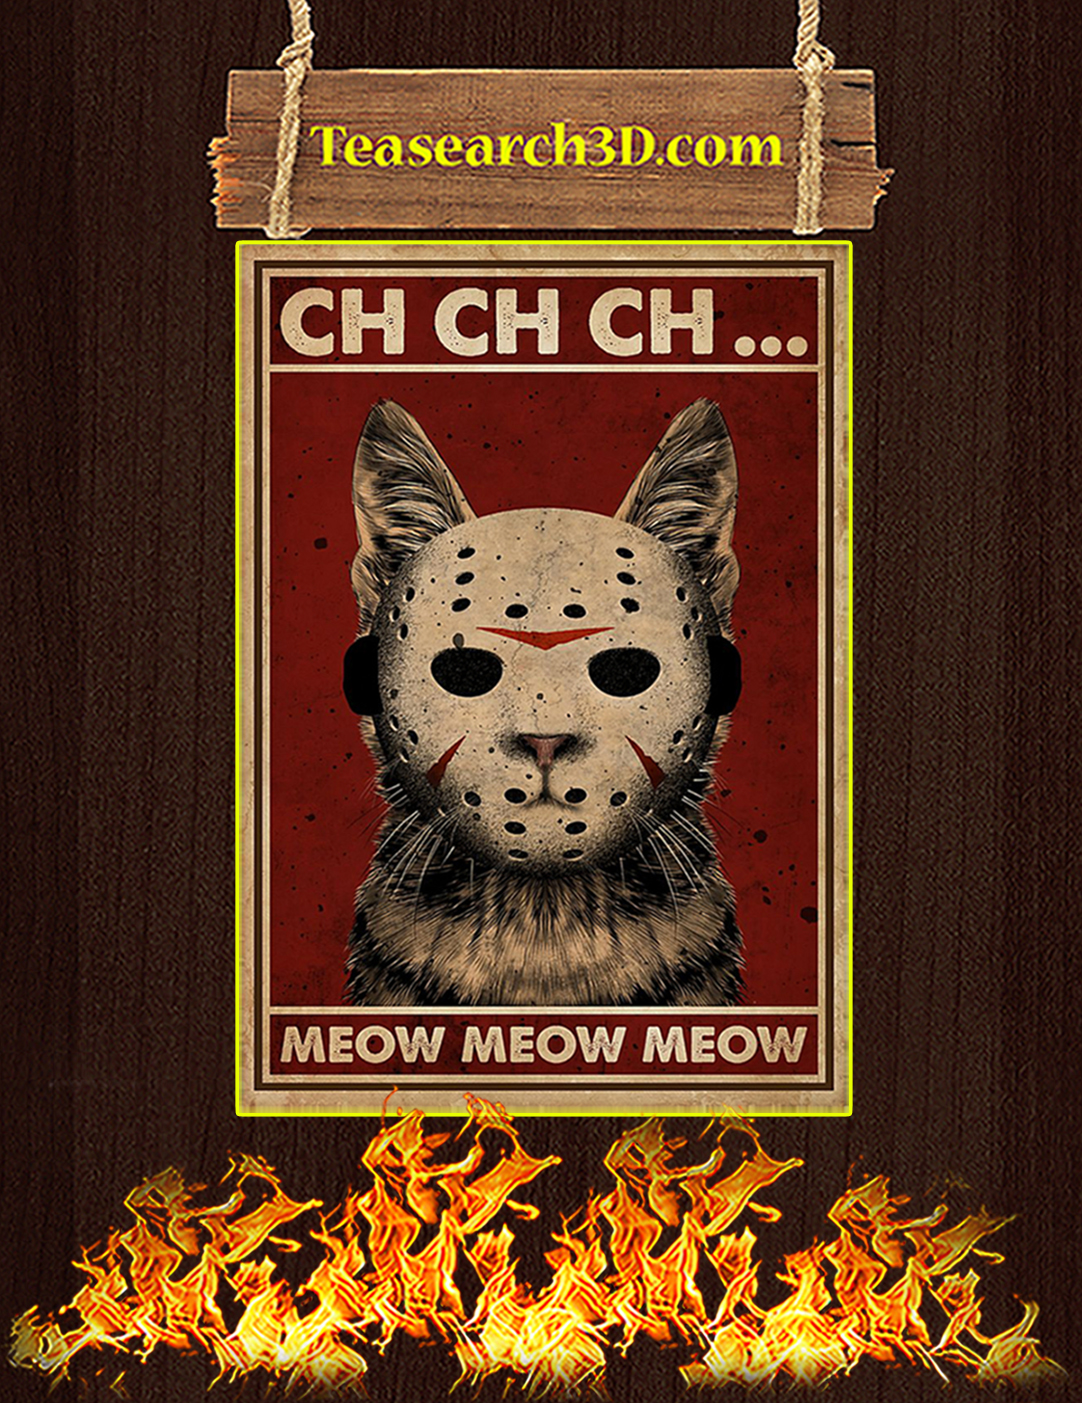 Ch ch ch meow meow meow poster A2